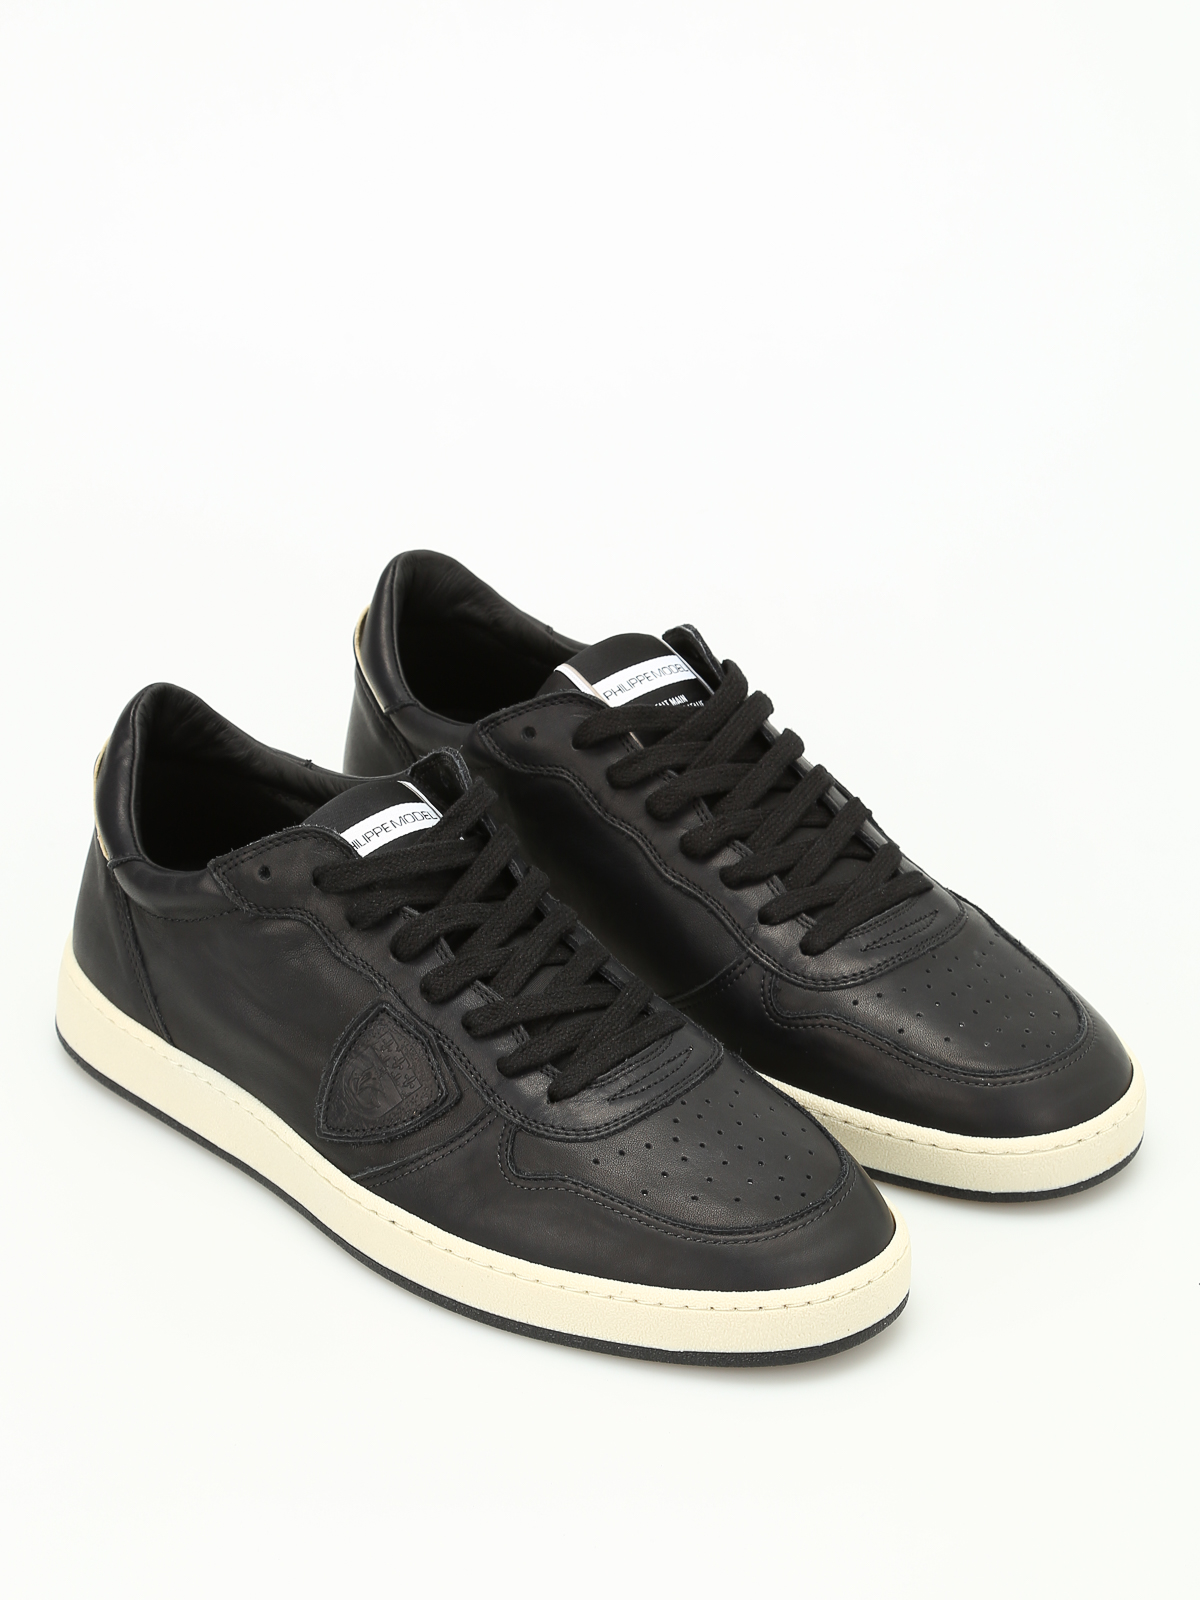 Philippe model Lakers Leather Low-Top Sneakers 0DttMBR